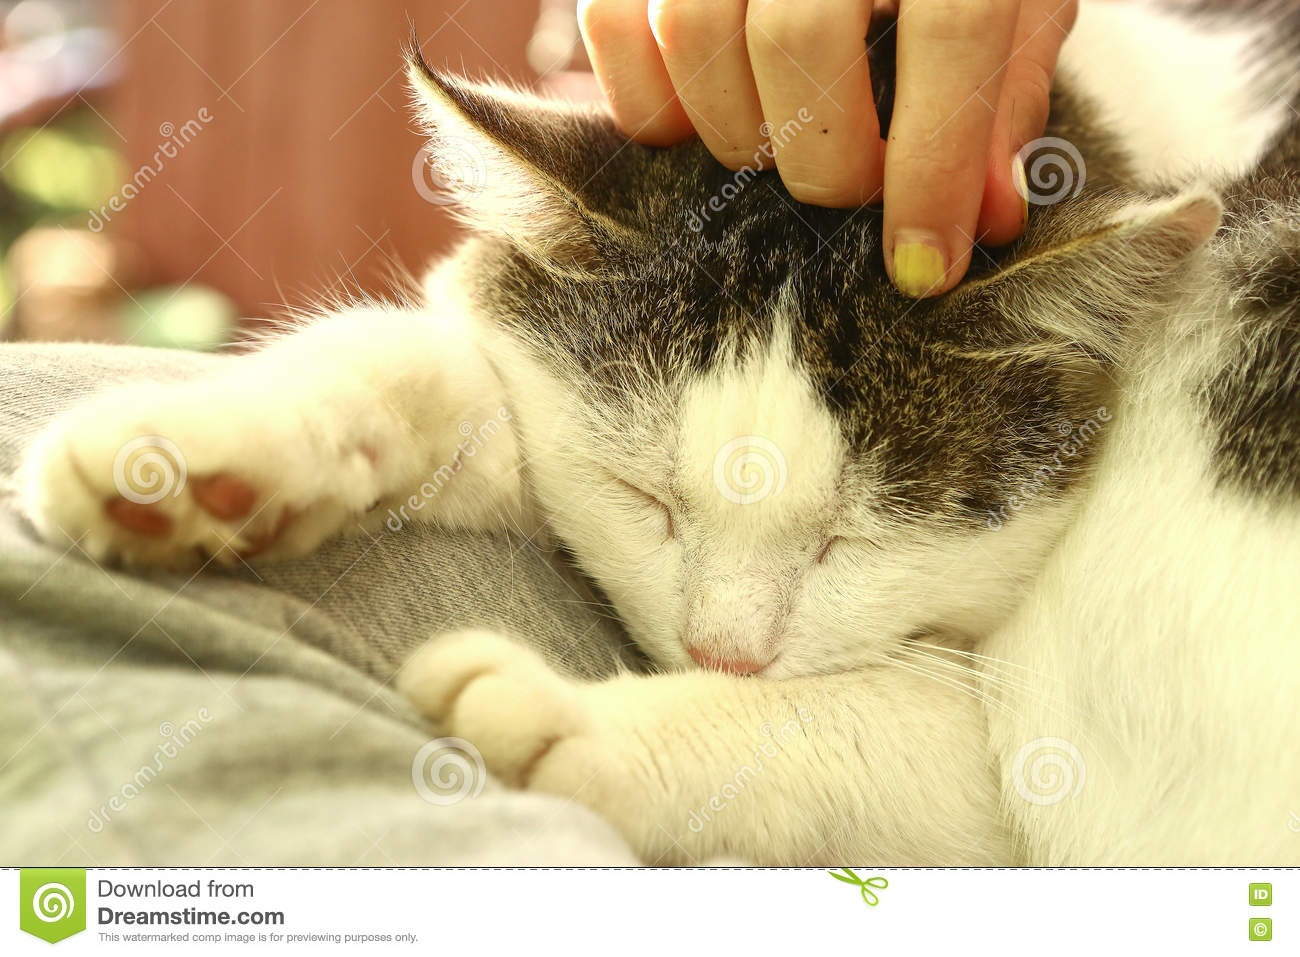 Download Close Up Outdoor Photo Of The Cat On Lap Stroke Stock Photo - Image of country, beautiful: 80219910